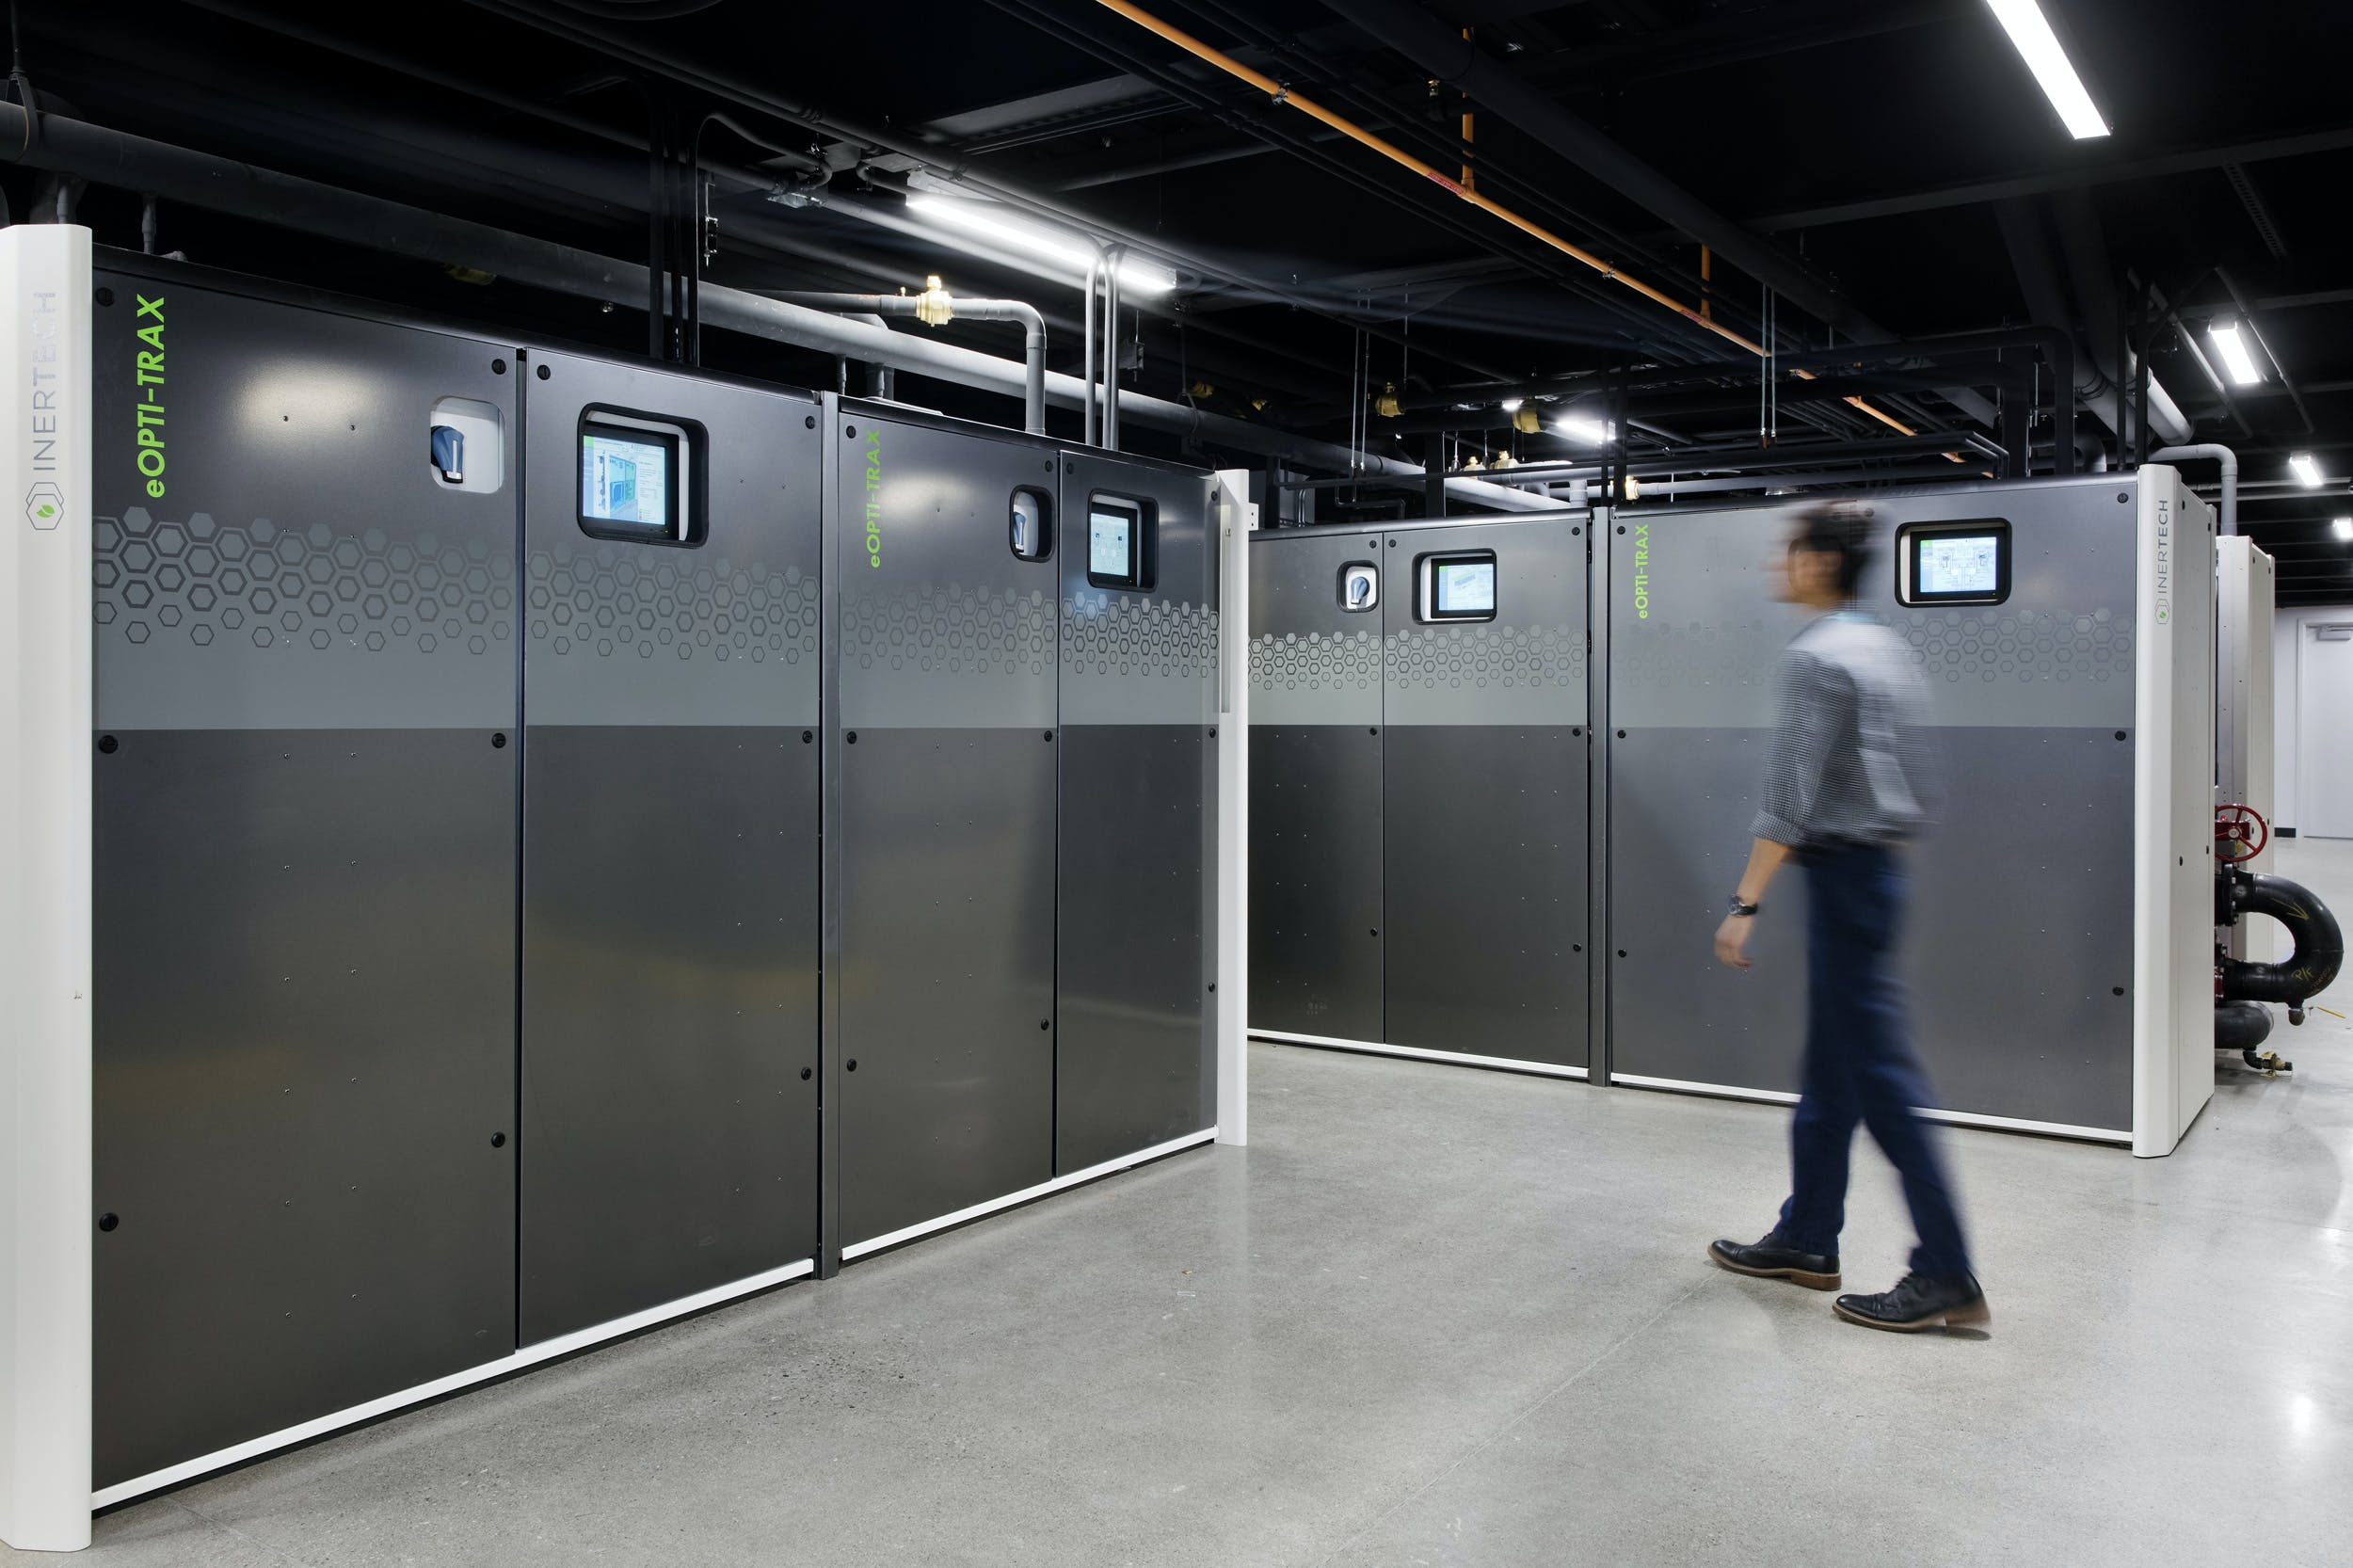 Top 10 Power-Related Questions for Your Data Center Search